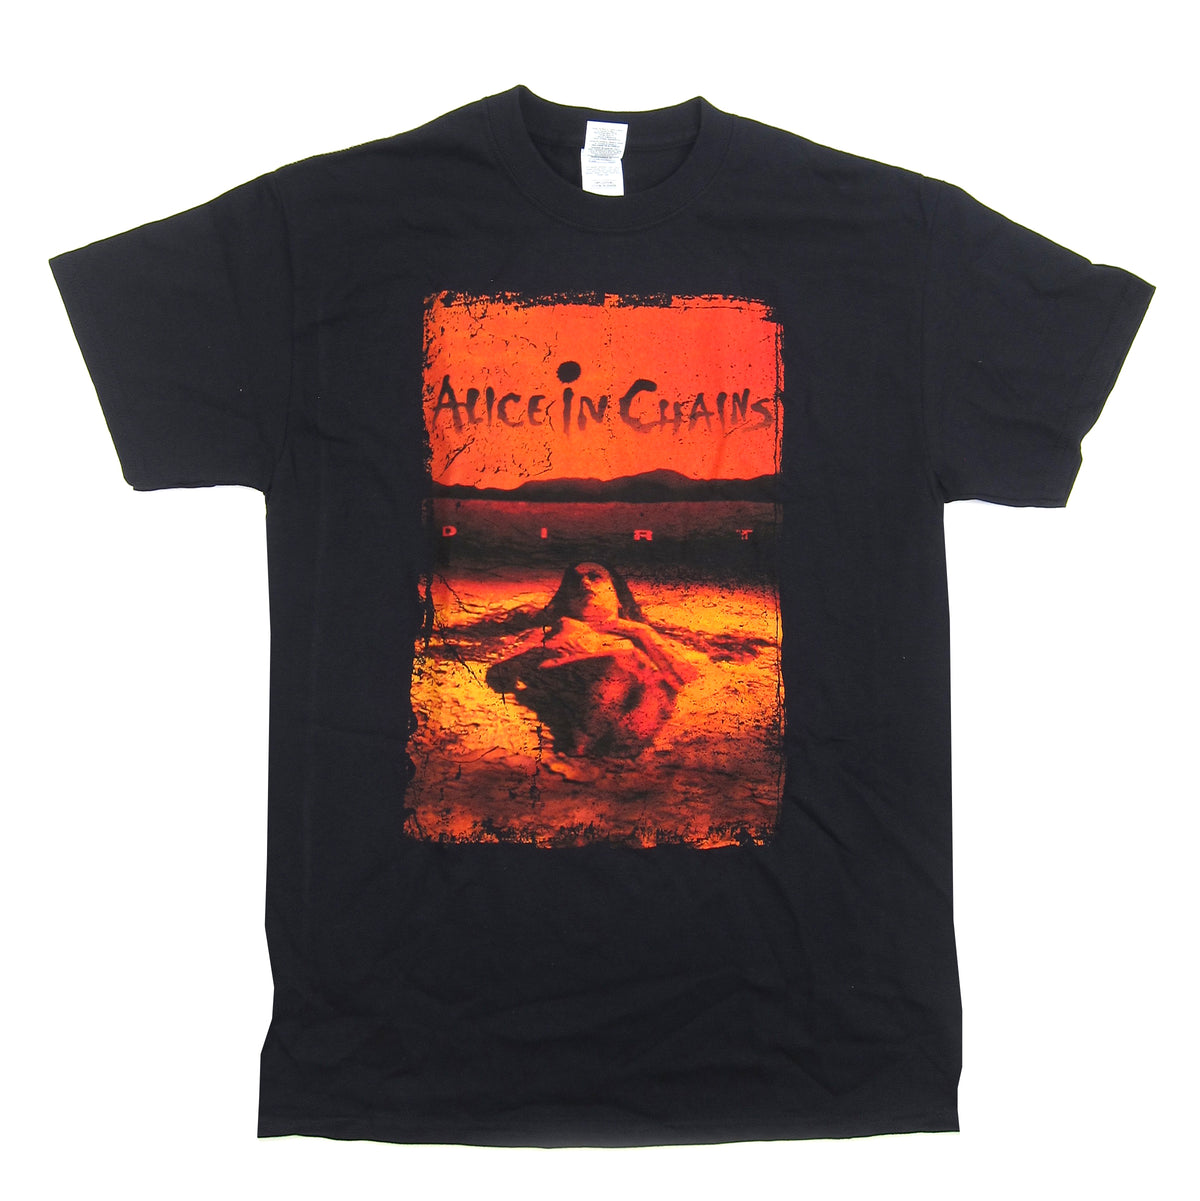 Alice In Chains: Dirt Album Cover Shirt - Black